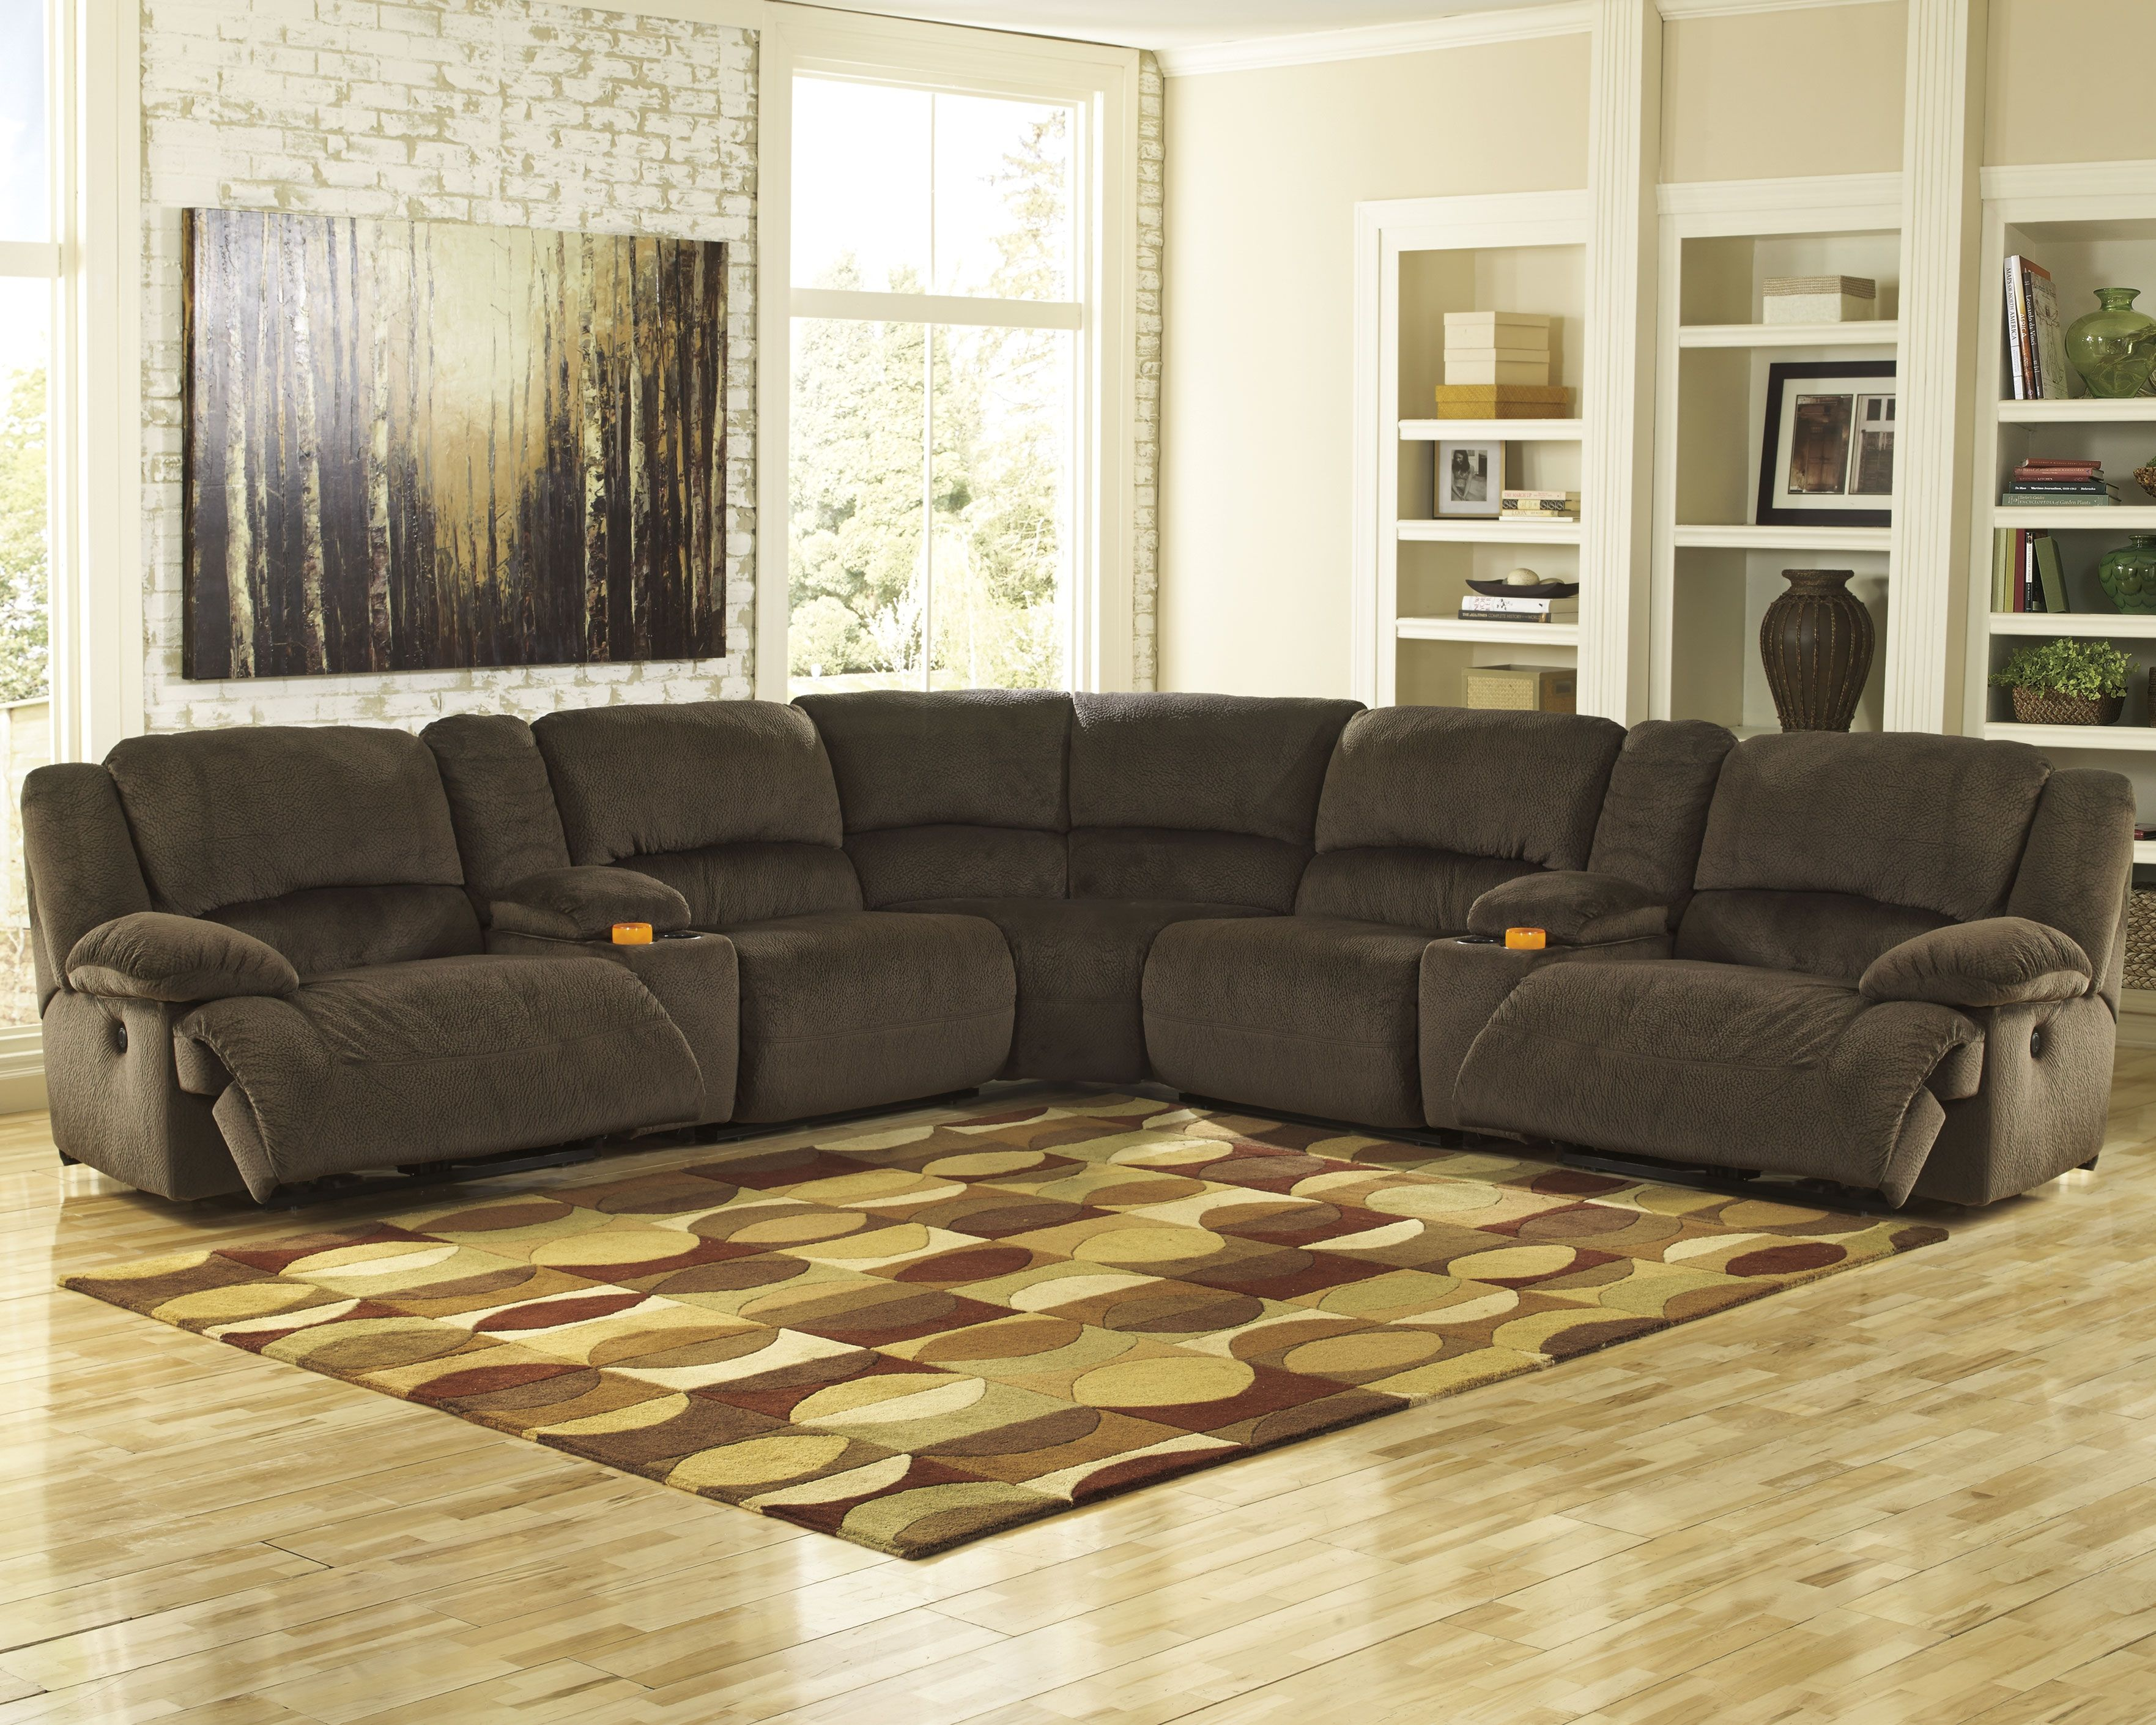 Toletta 7-Piece Sectional, Chocolate | Products in 2019 ...